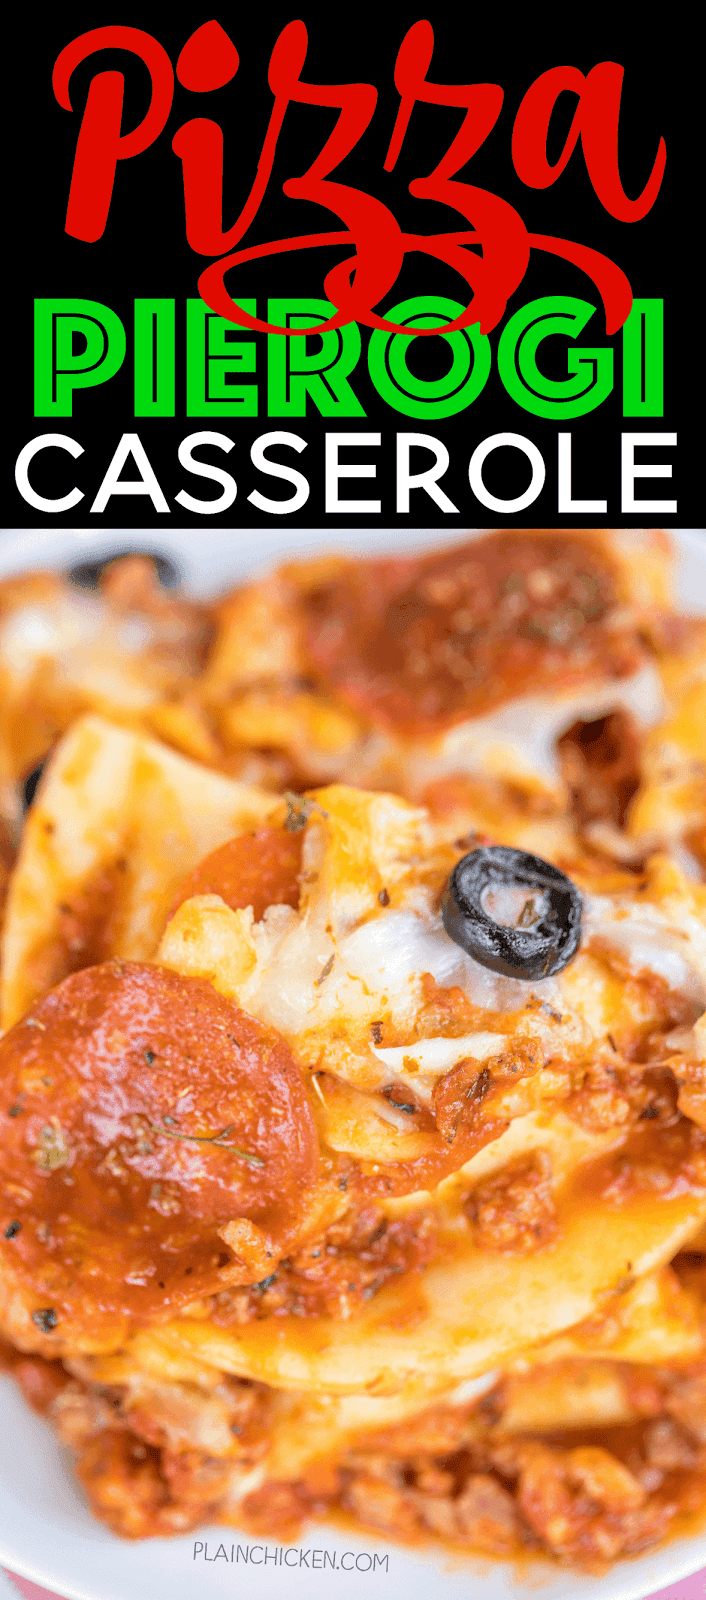 Pizza Pierogi Casserole - family friendly weeknight dinner!! Super easy to make and tastes AMAZING!! Can make ahead and freeze for later. Top casserole with your favorite pizza toppings - get creative! Frozen pierogis, italian sausage, spaghetti sauce, pepperoni, mozzarella cheese. Everyone cleaned their plate and went back for seconds! Weeknight dinner SUCCESS!!!